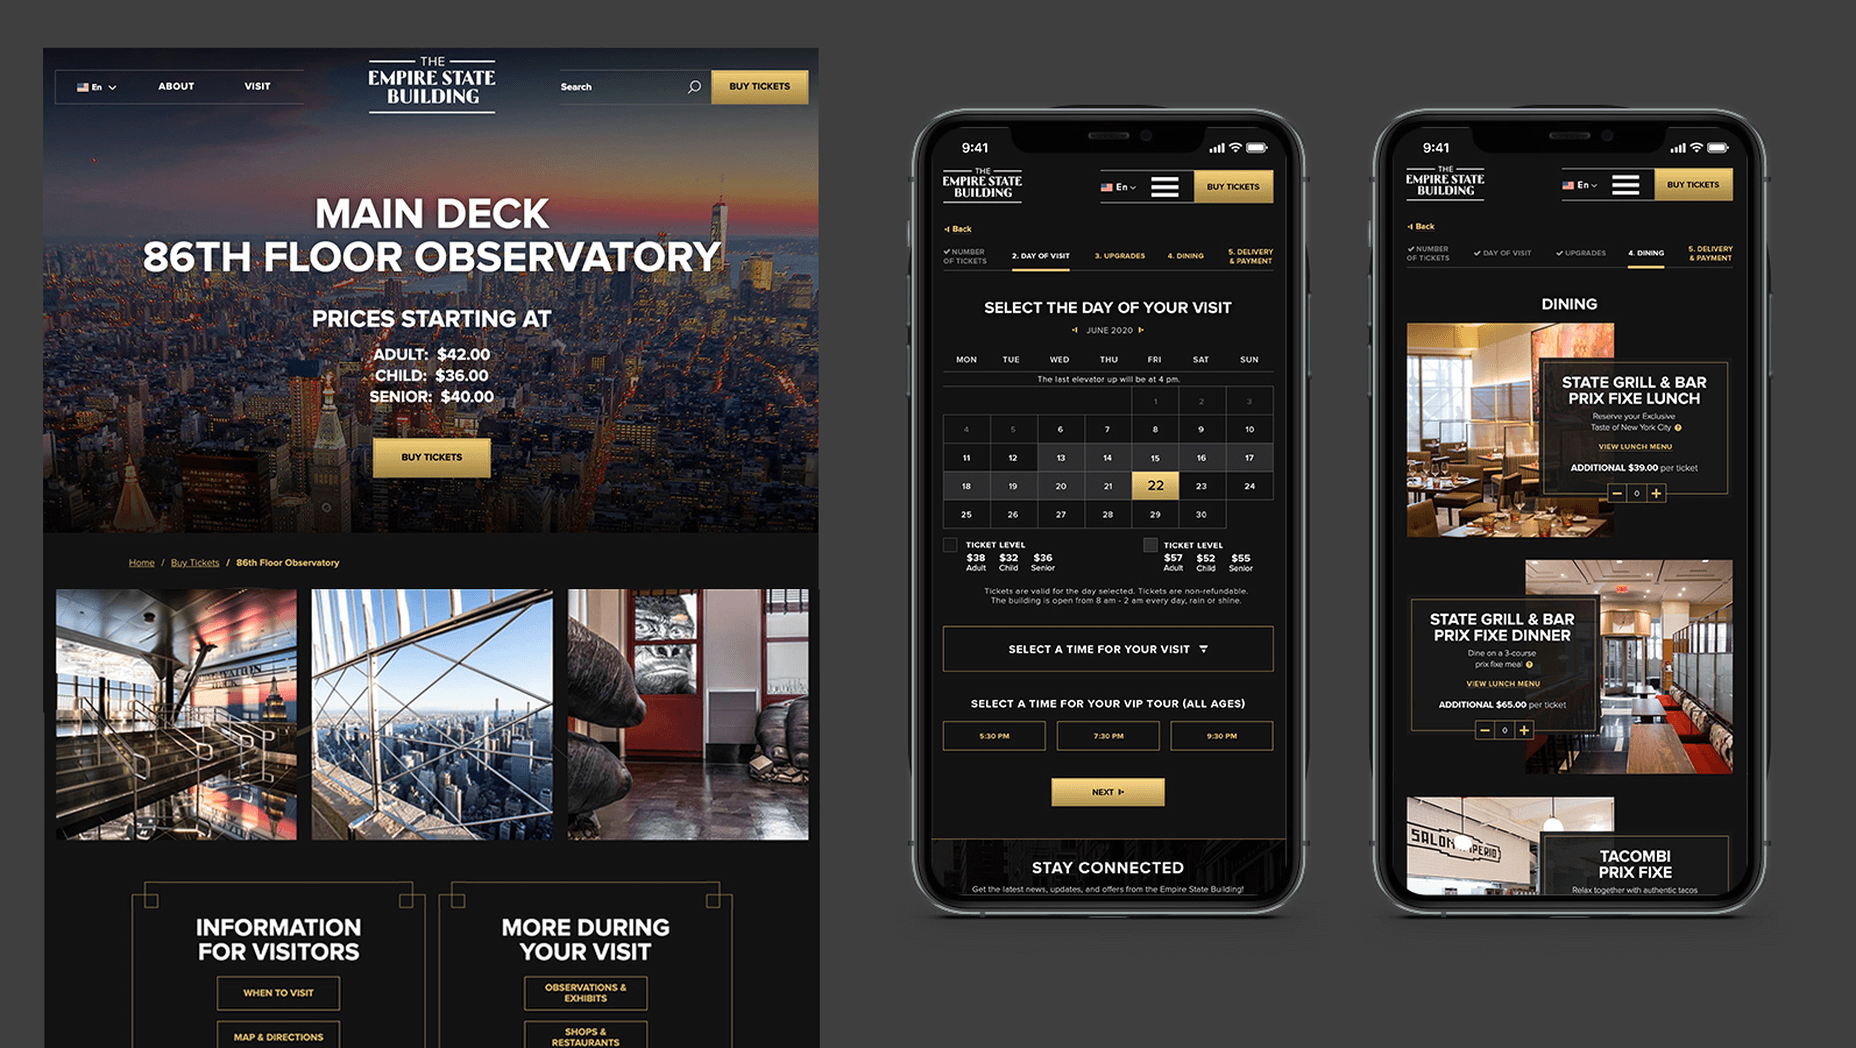 Empire State Building Website and Mobile App Redesign